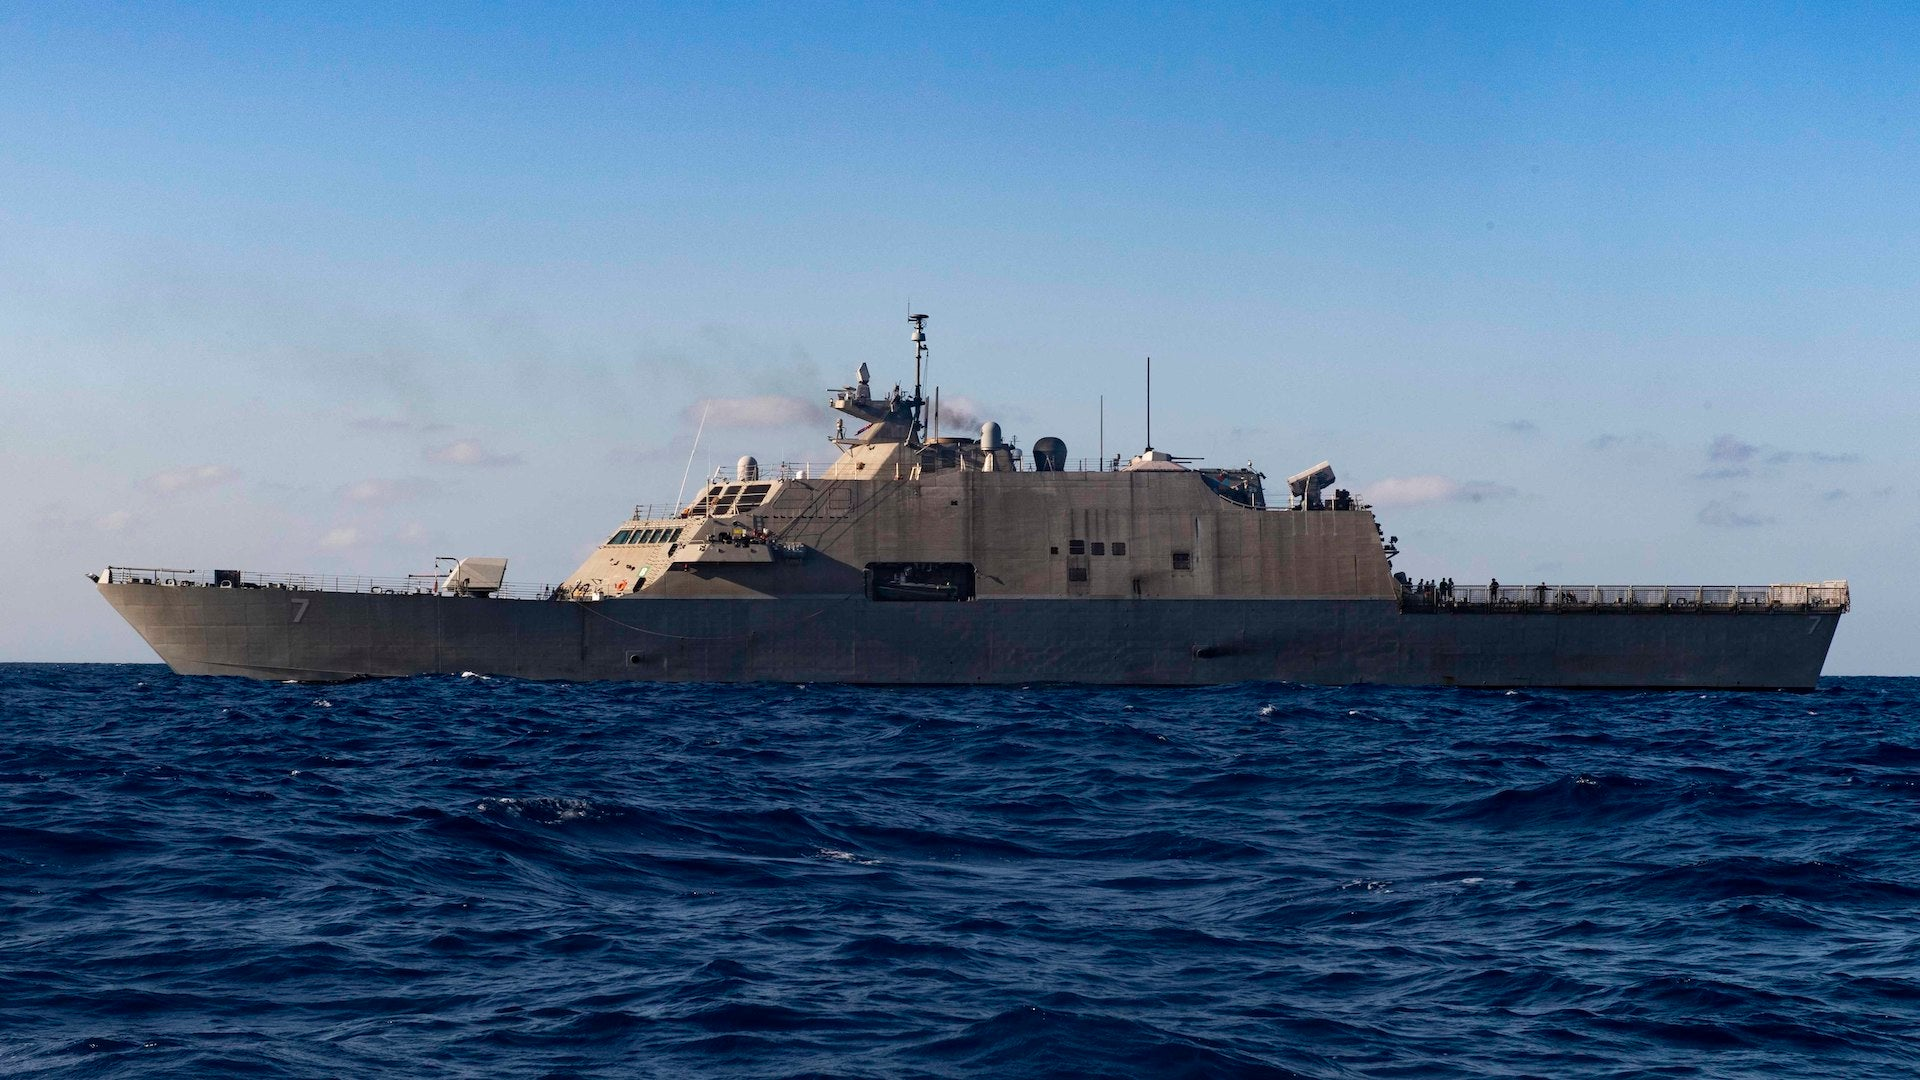 The Freedom-class littoral combat ship USS Detroit (LCS 7) sails through the Caribbean Sea. During the deployment to the U.S. Southern Command's area of responsibility, Detroit, with embarked helicopter and USCG law enforcement detachment, will support Joint Interagency Task Force South's mission, which includes counter-illicit drug trafficking in the Caribbean and Eastern Pacific. (U.S. Navy photo by Mass Communication Specialist 2nd Class Anderson W. Branch/Released)